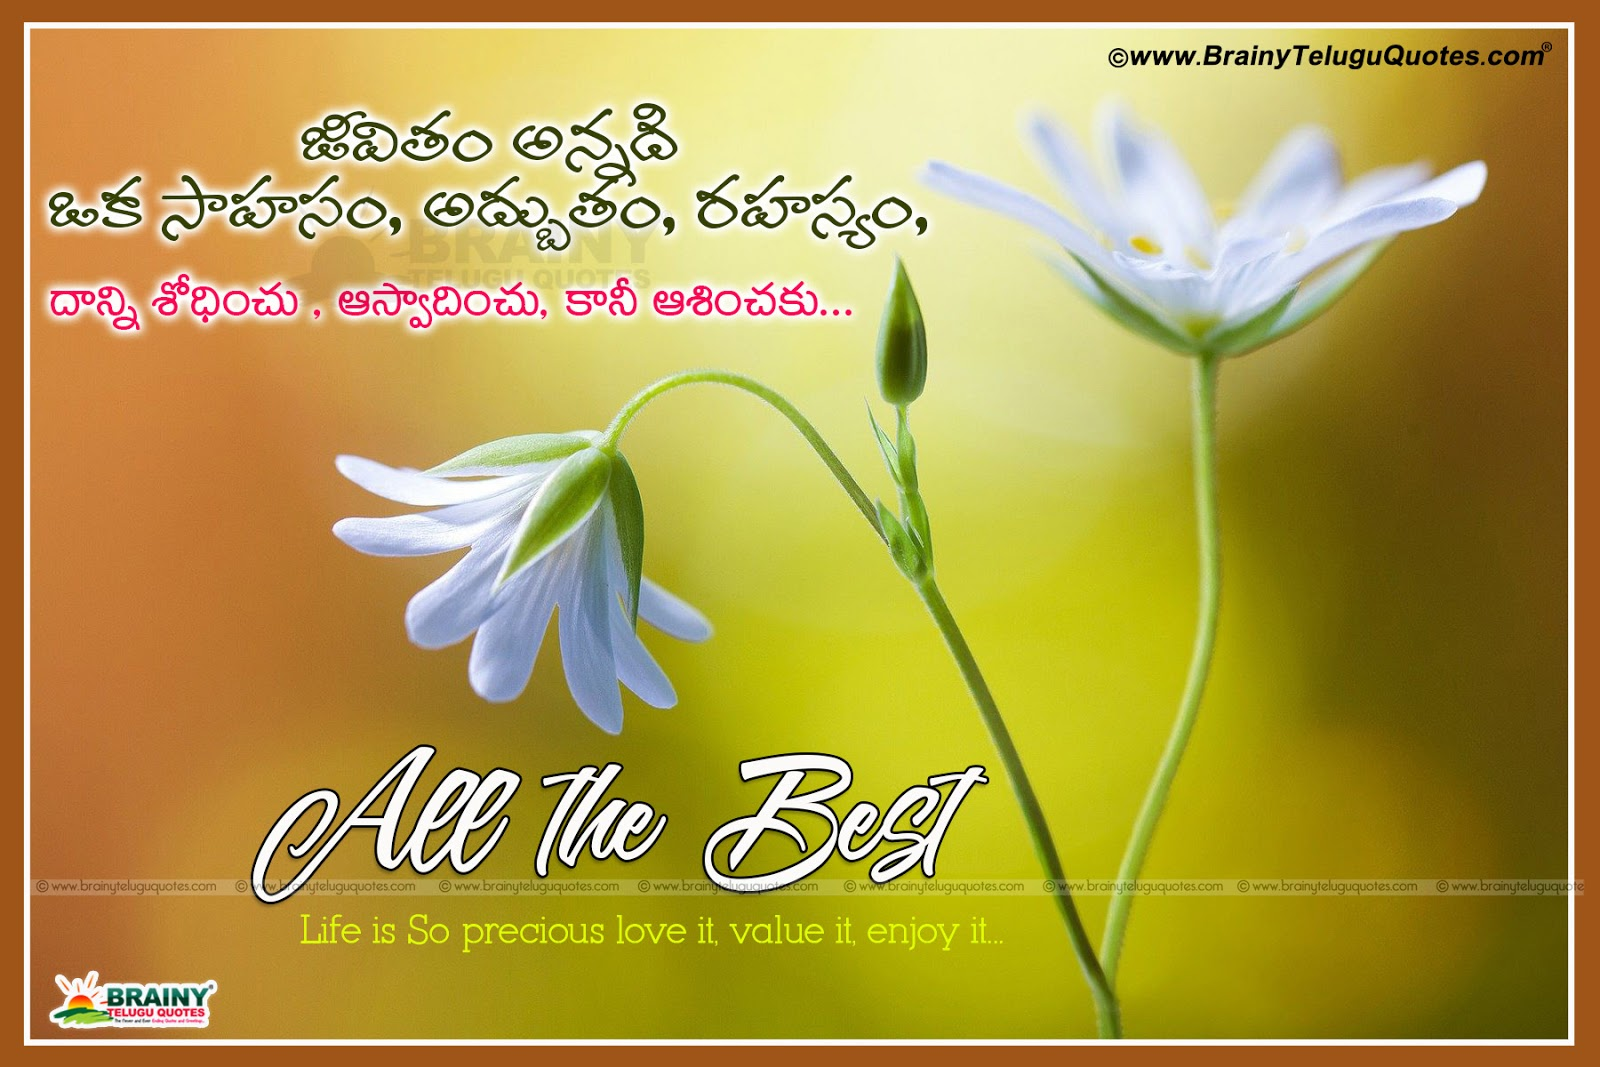 Inspiring Motivational Quotes For Life With All The Best Telugu